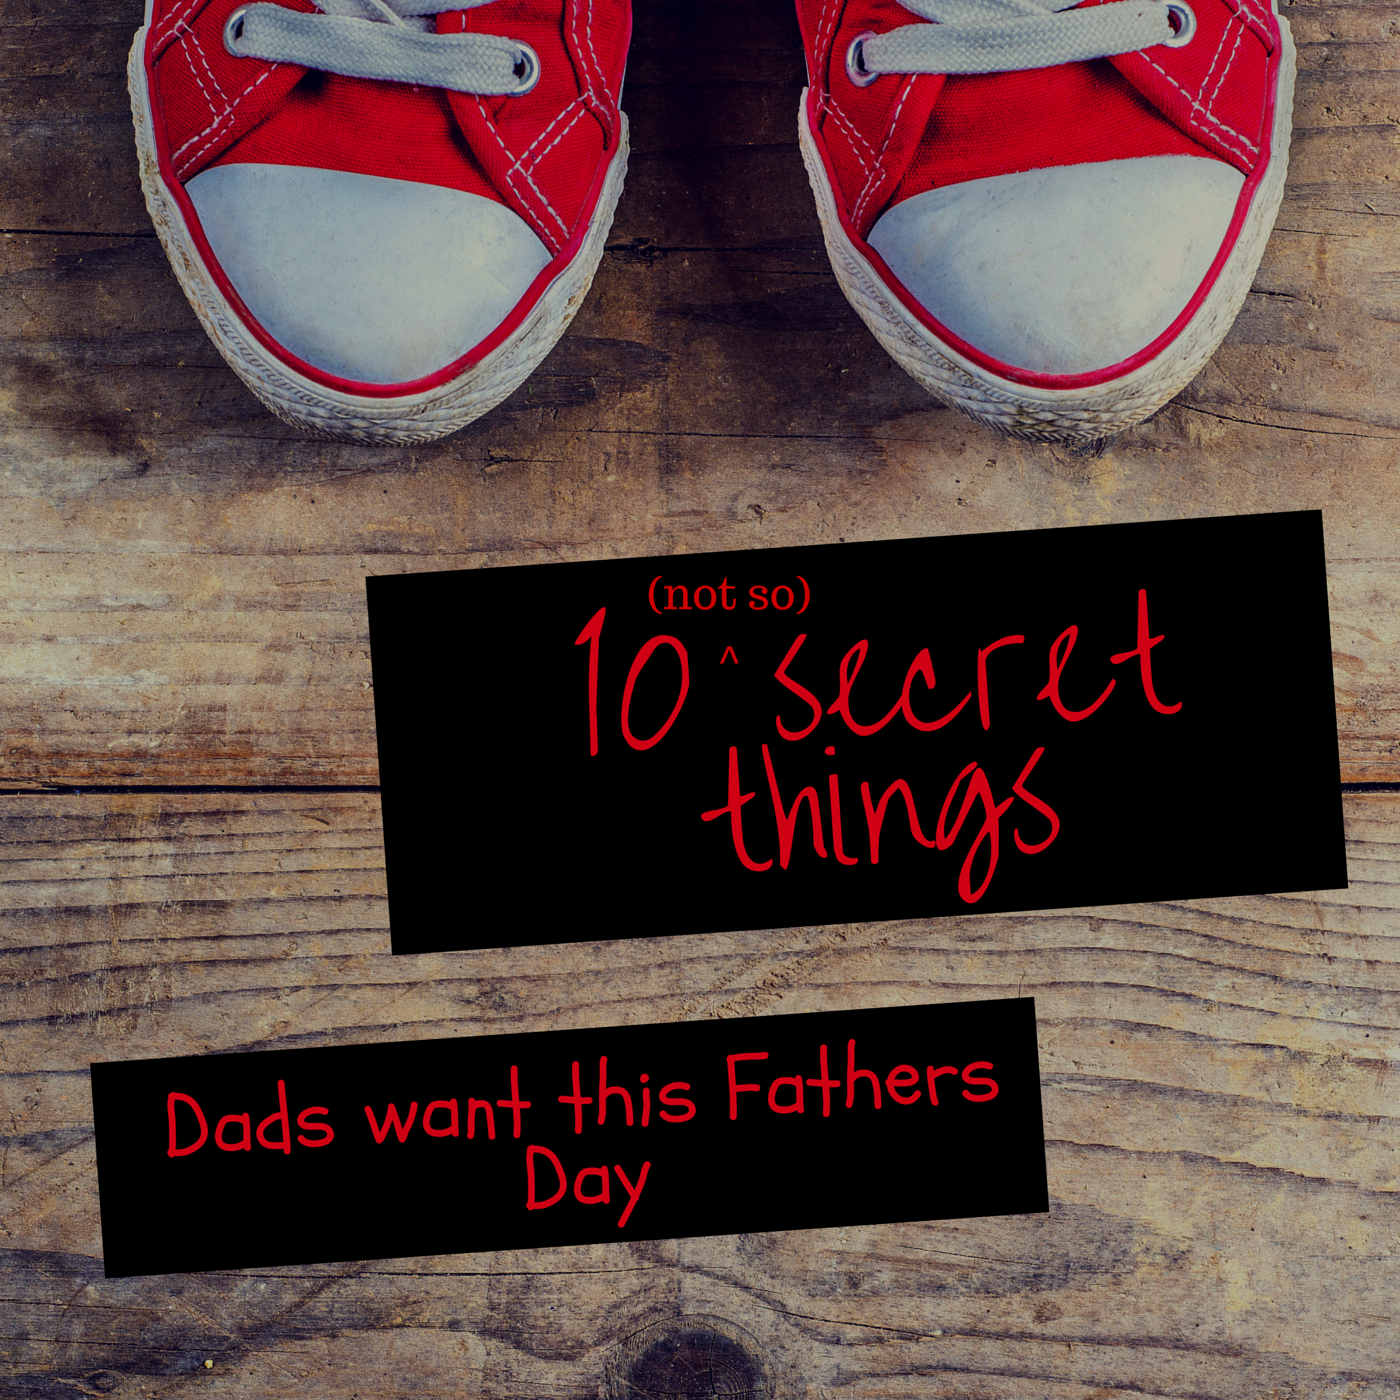 10 (not so) secret things Dads want for fathers day